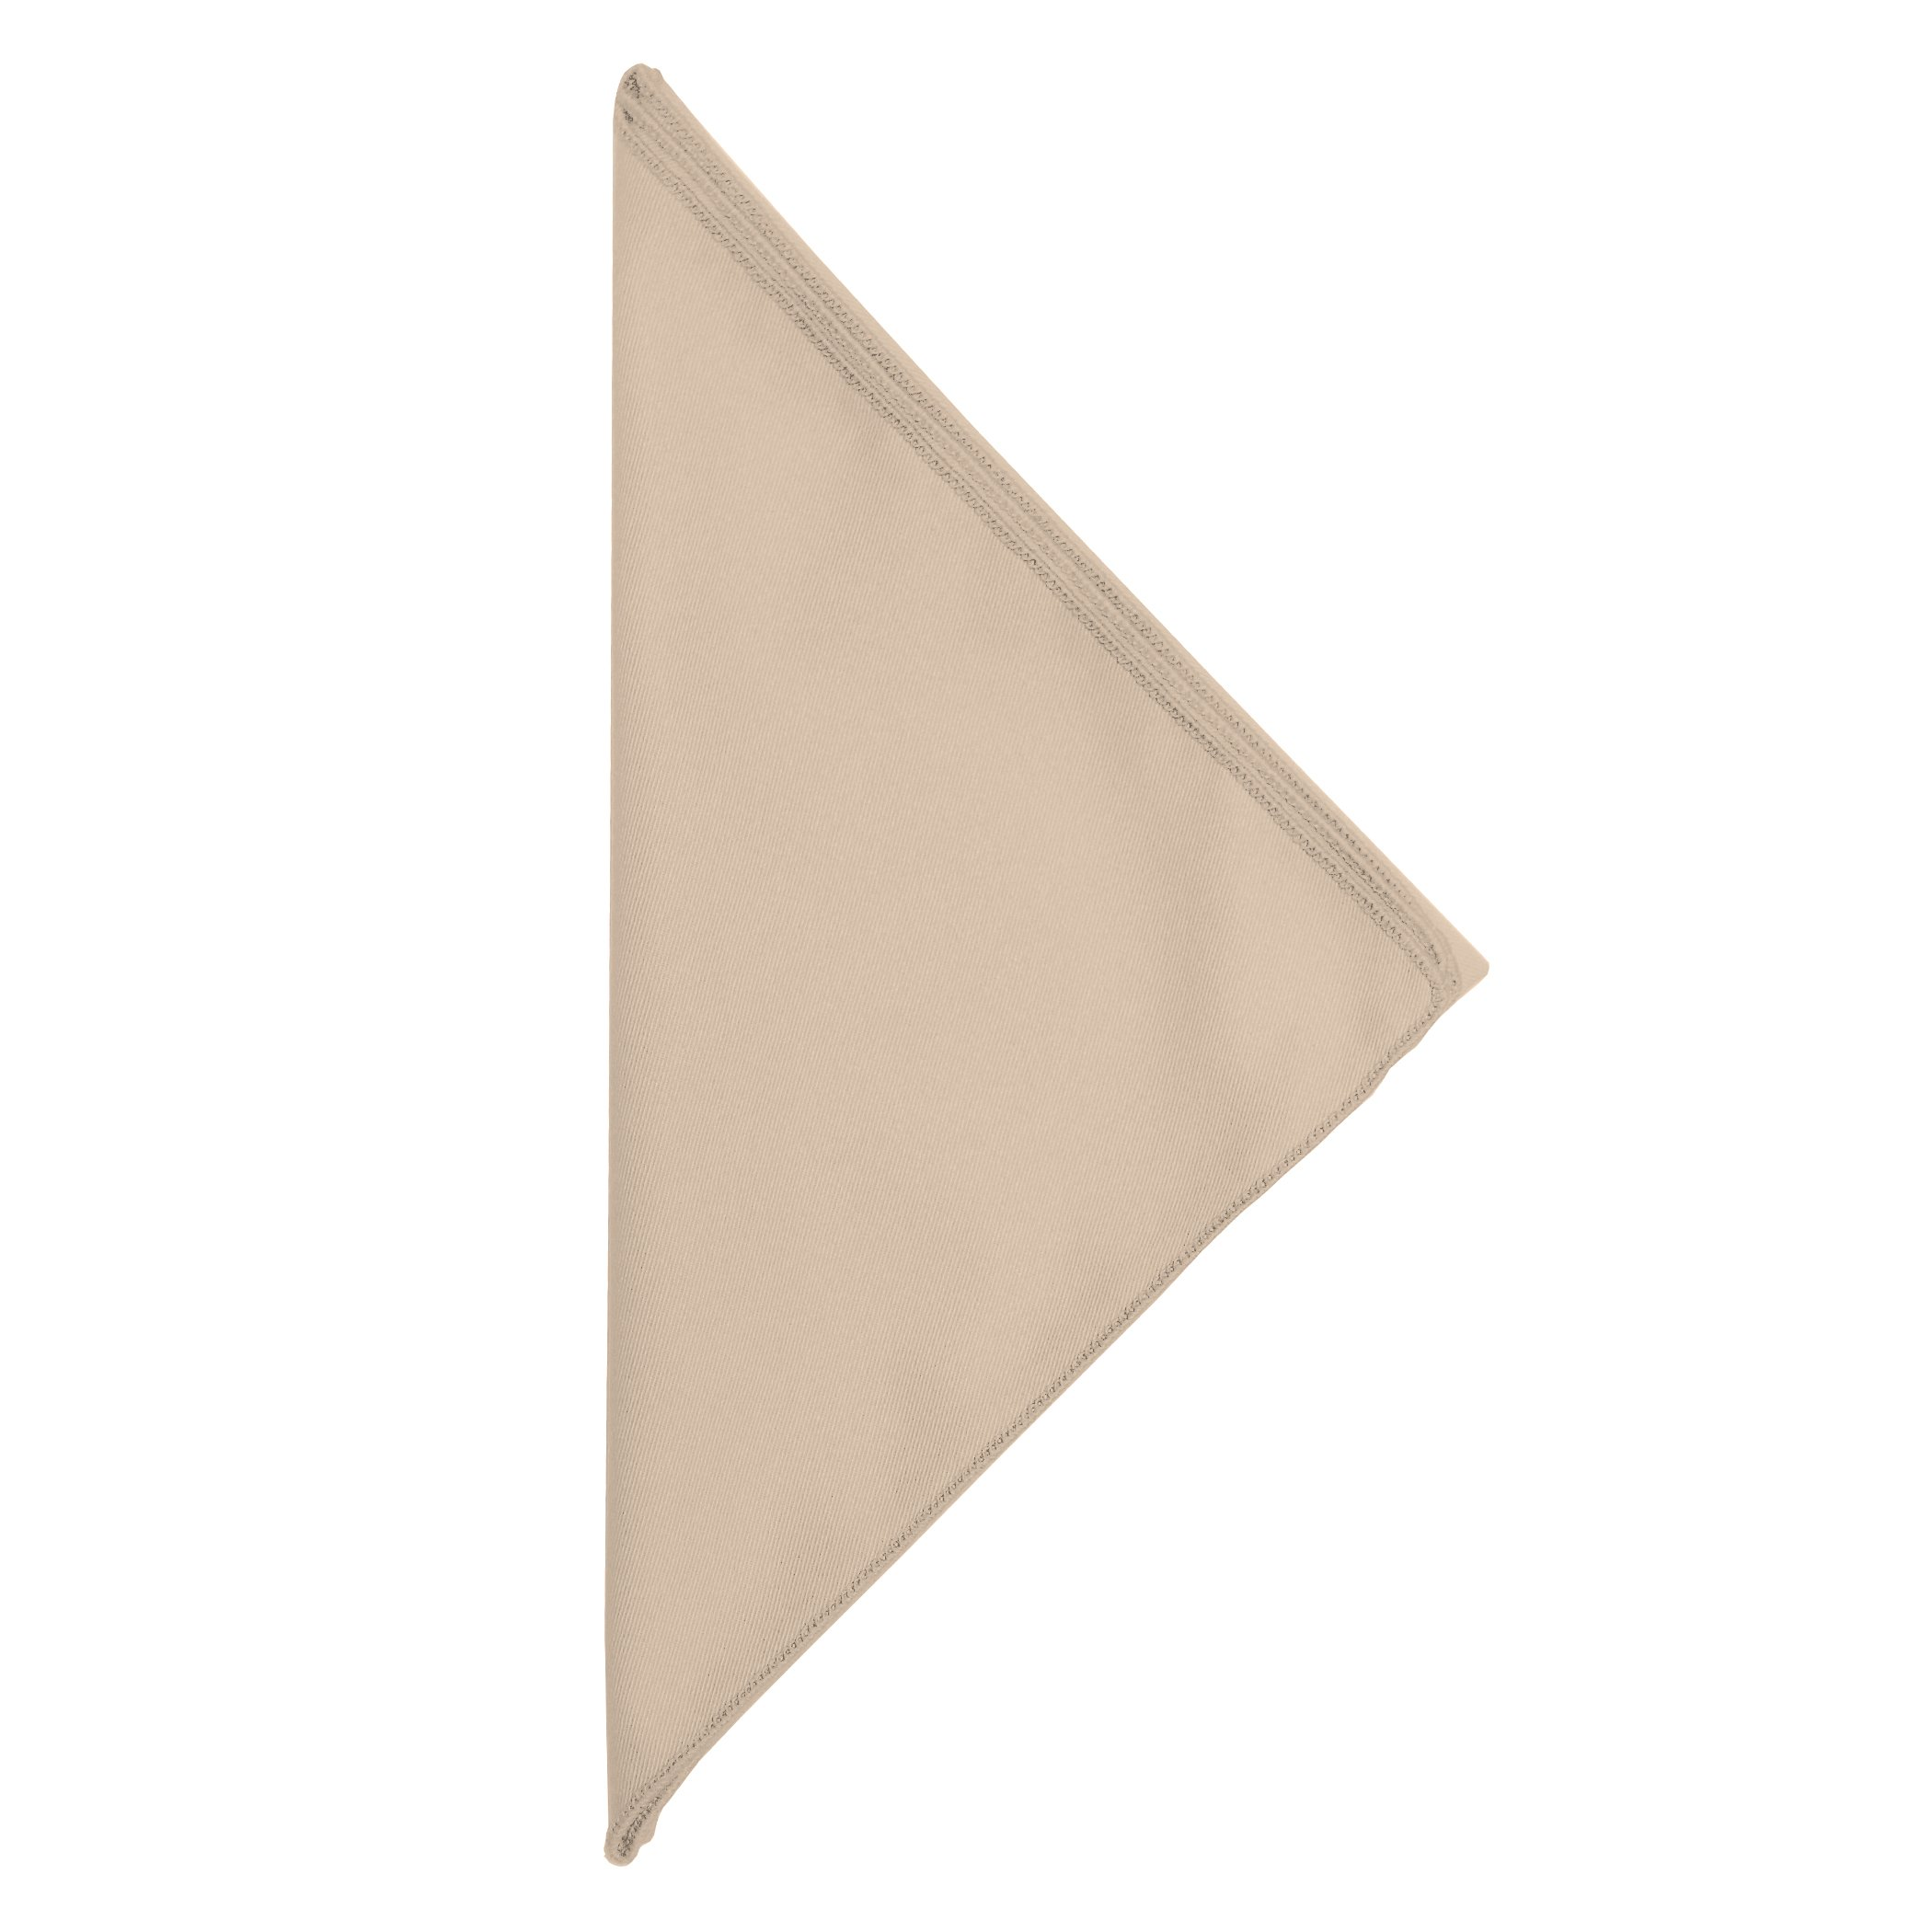 Ultimate Textile -10 Dozen- Poly-Cotton Twill 10 x 10-Inch Cloth Cocktail Napkins, Beige by Ultimate Textile